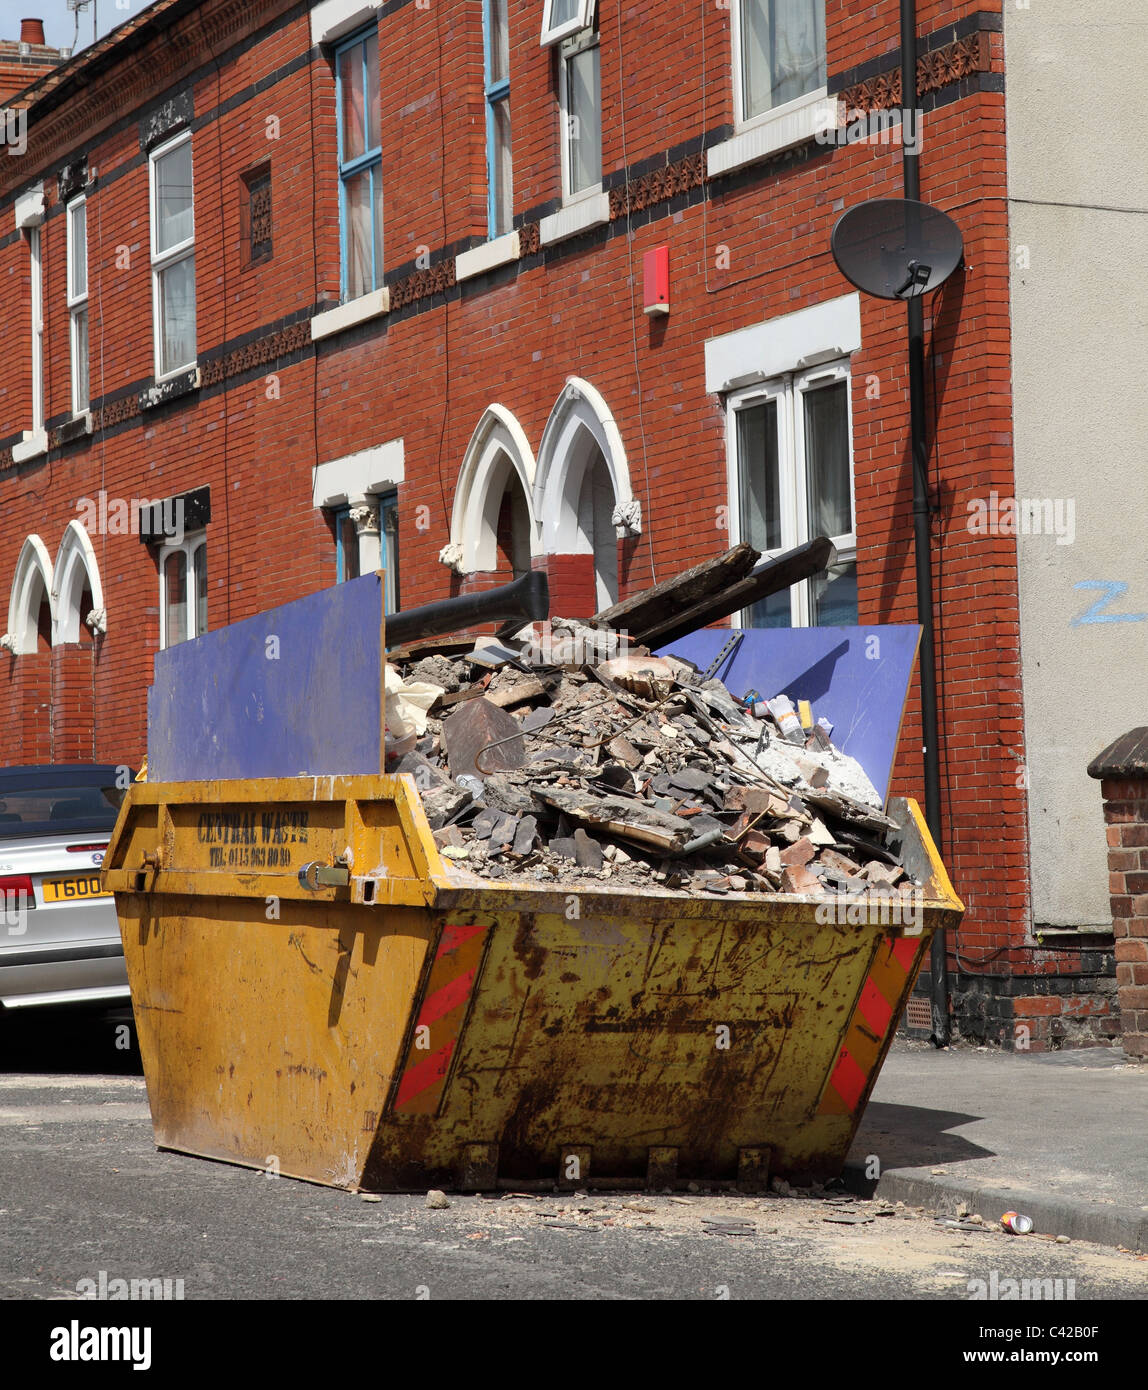 A skip outside a house in a U.K. city. - Stock Image